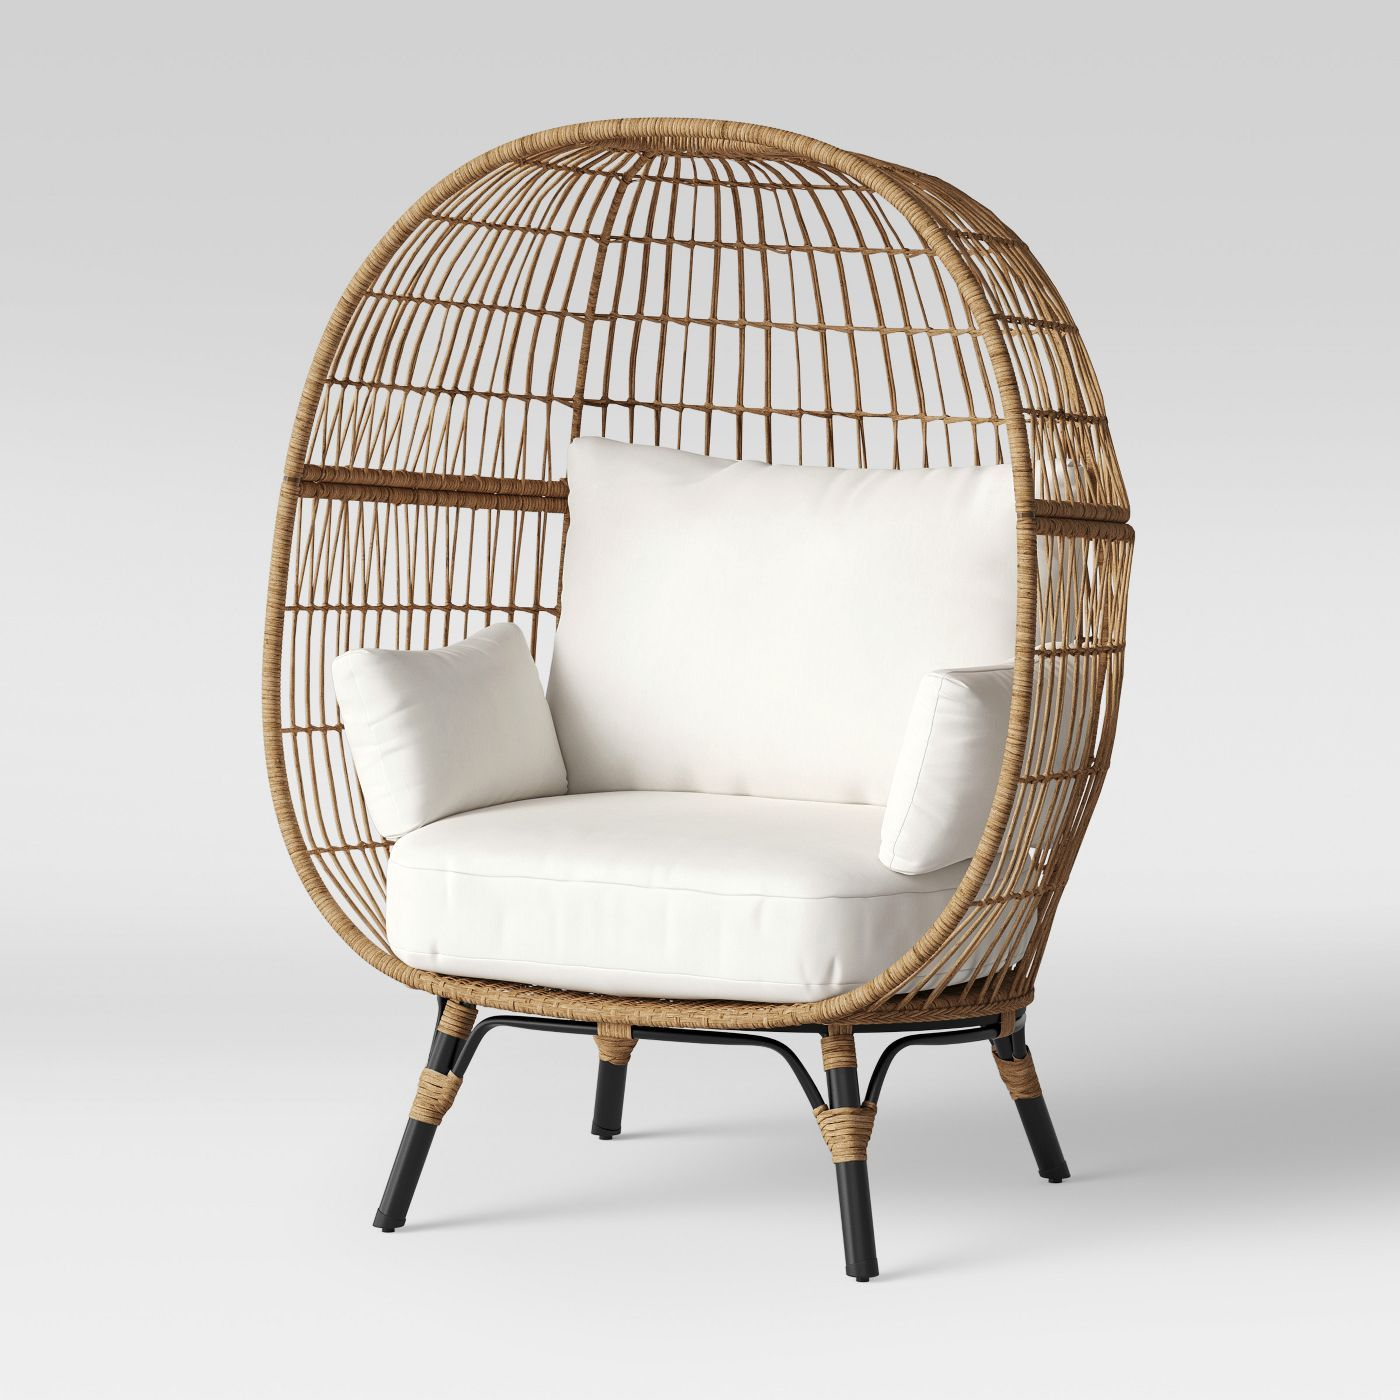 Southport Patio Egg Chair Opalhouse™ Swinging chair